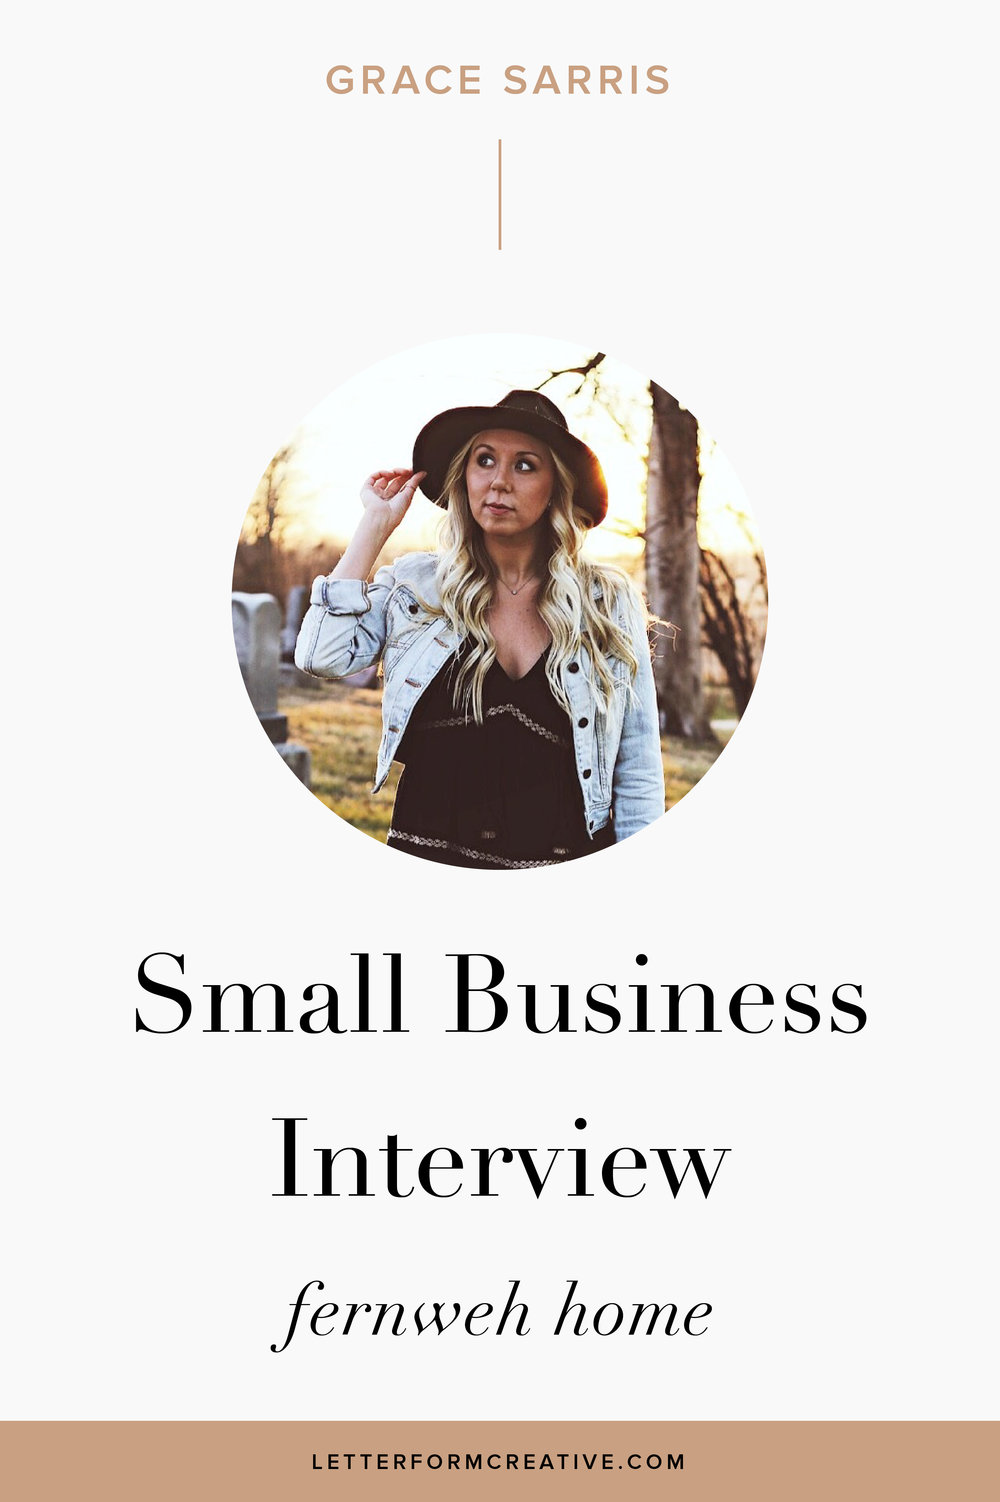 """The reality is customers love connecting with a real person, that's the true beauty of a small business!"" THAT'S ONE OF MANY GREAT QUOTES FROM MY INTERVIEW WITH SMALL BUSINESS OWNER, GRACE SARRIS.  AS THE OWNER OF A HOME DECOR BUSINESS, GRACE IS WELL VERSED IN THE UPS AND DOWNS OF THE ENTREPRENEURIAL JOURNEY. IN THIS INTERVIEW SHE TALKS ABOUT HER SOURCES OF INSPIRATION, THE VALUE OF BEING AUTHENTIC, HAVING TO WEAR MANY HATS, AND USING SOCIAL MEDIA, LIKE INSTAGRAM, AS AN ADVERTISING AND MARKETING TOOL. CLICK THROUGH FOR MORE IDEAS AND TIPS ON STARTING YOUR OWN ORGANIZATION!"